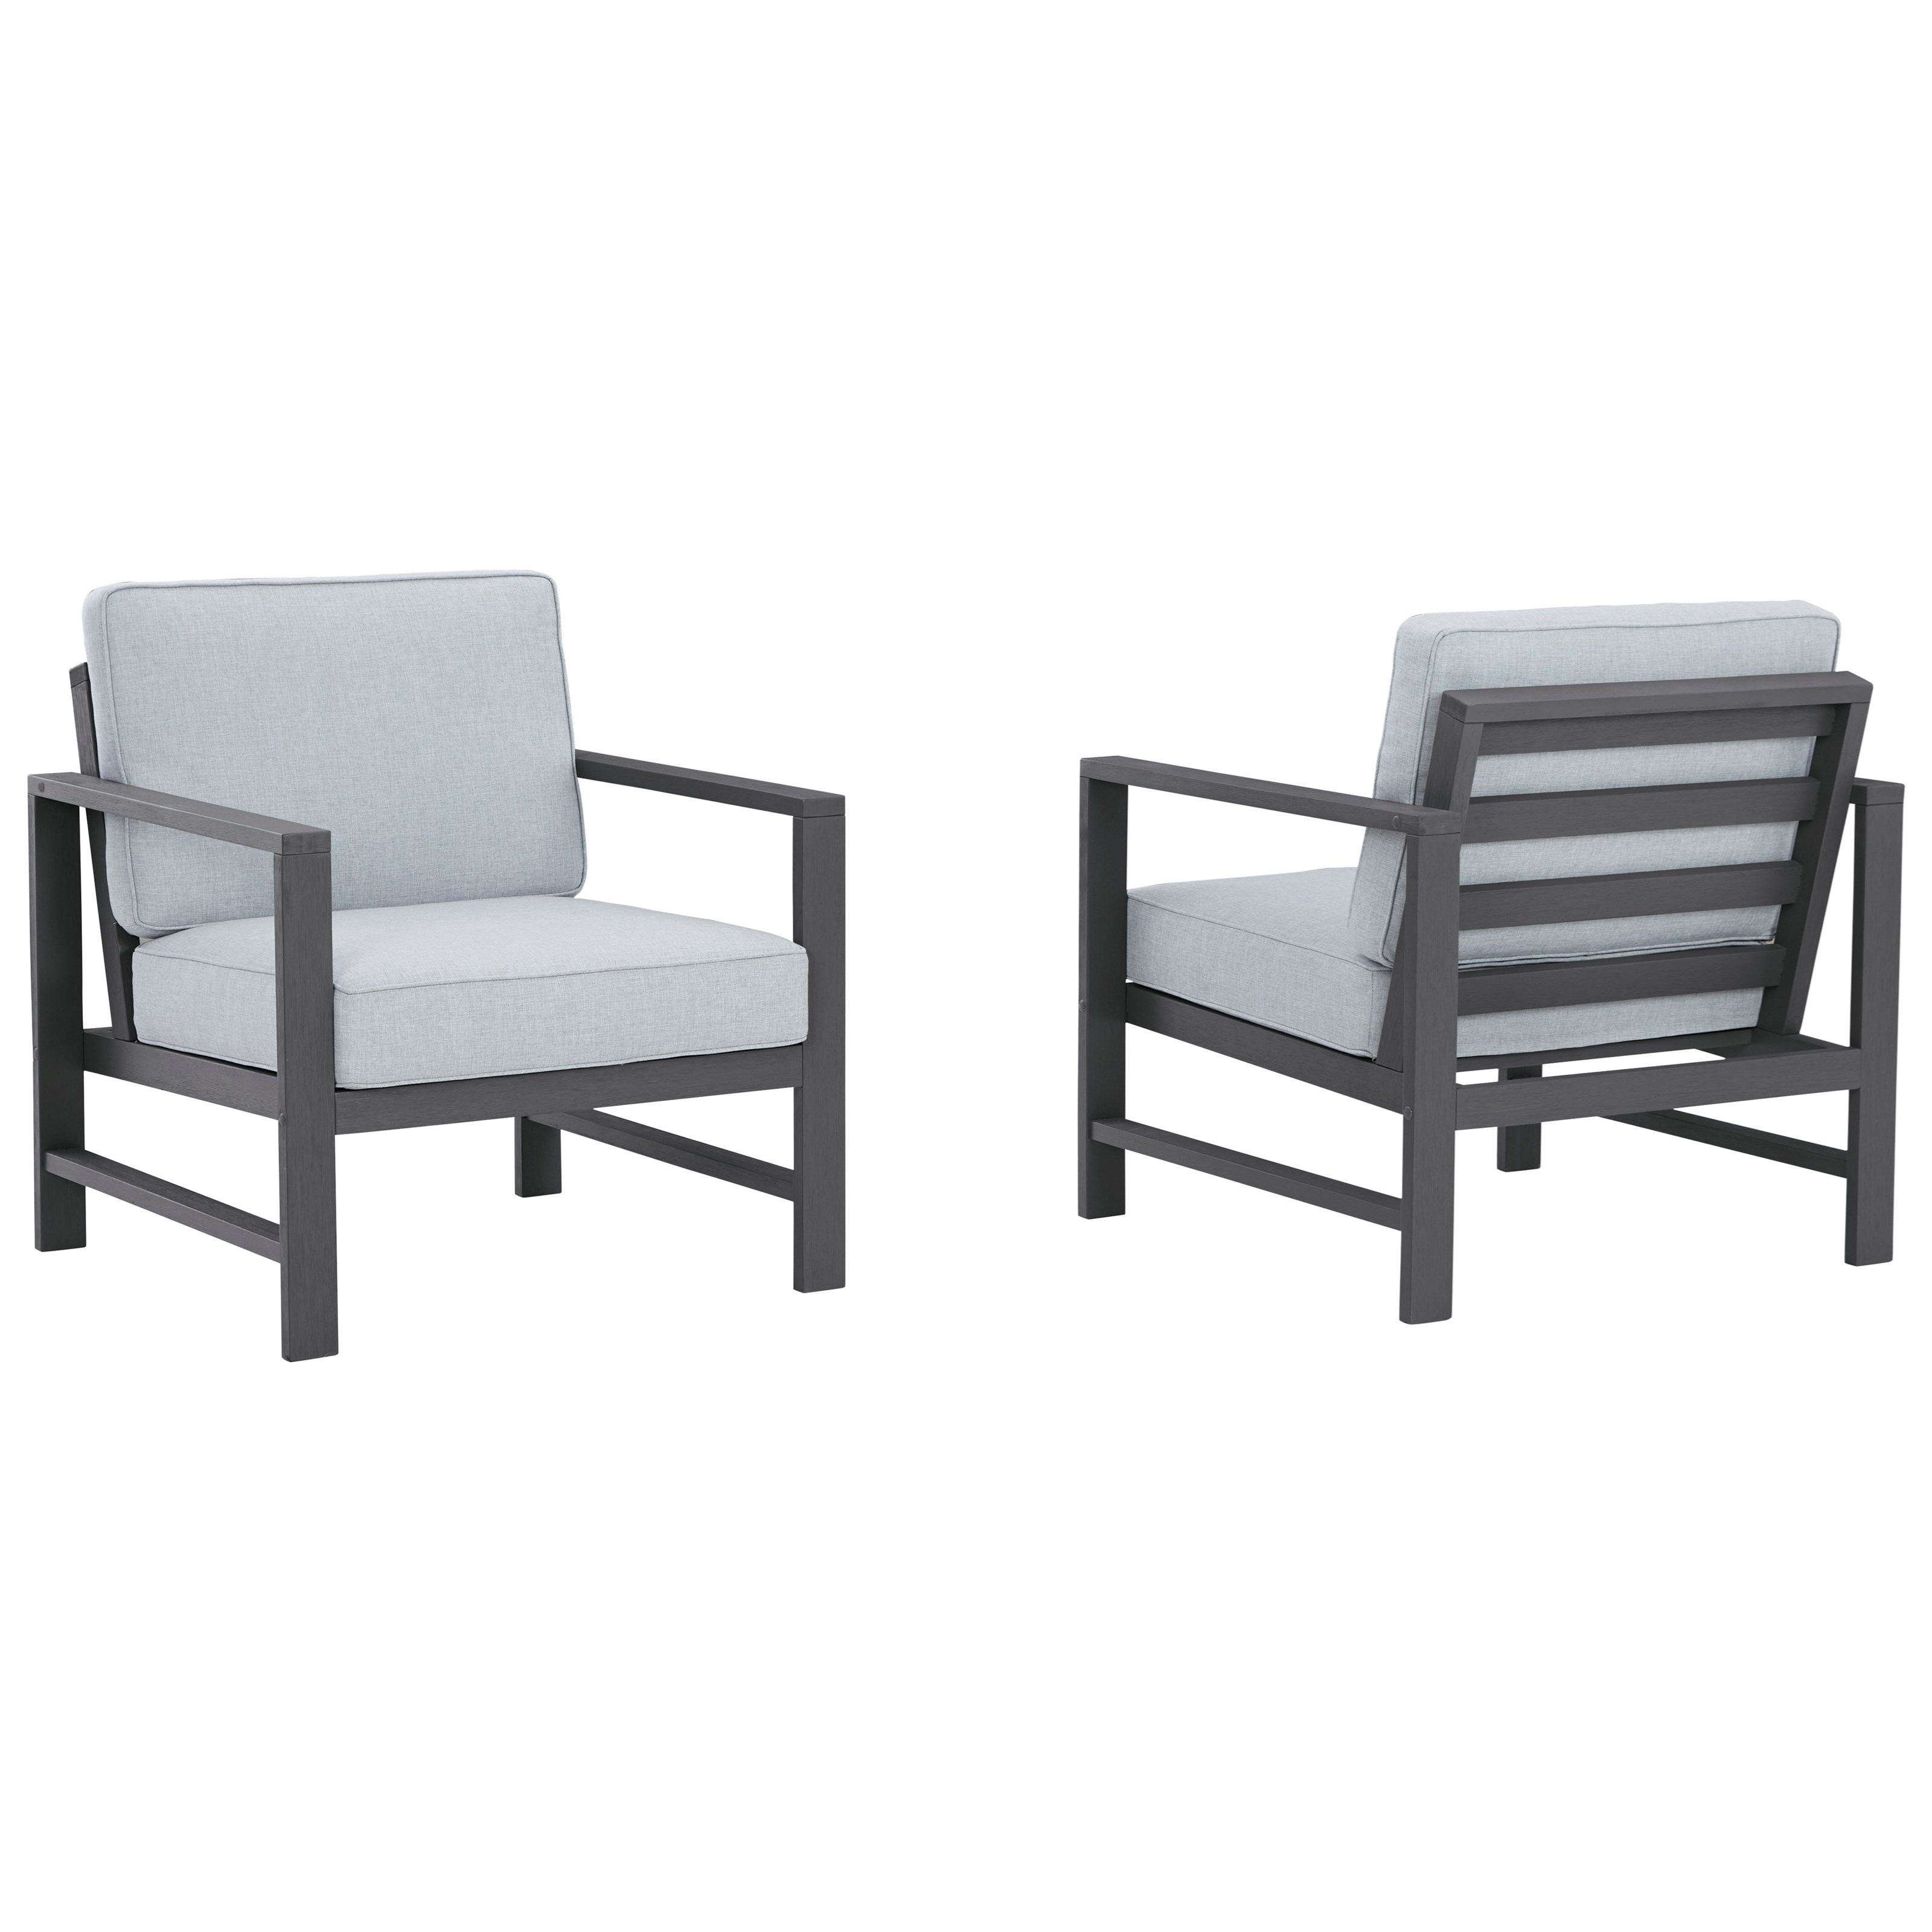 Fynnegan Set of 2 Lounge Chairs w/ Cushion by Signature Design by Ashley at Northeast Factory Direct